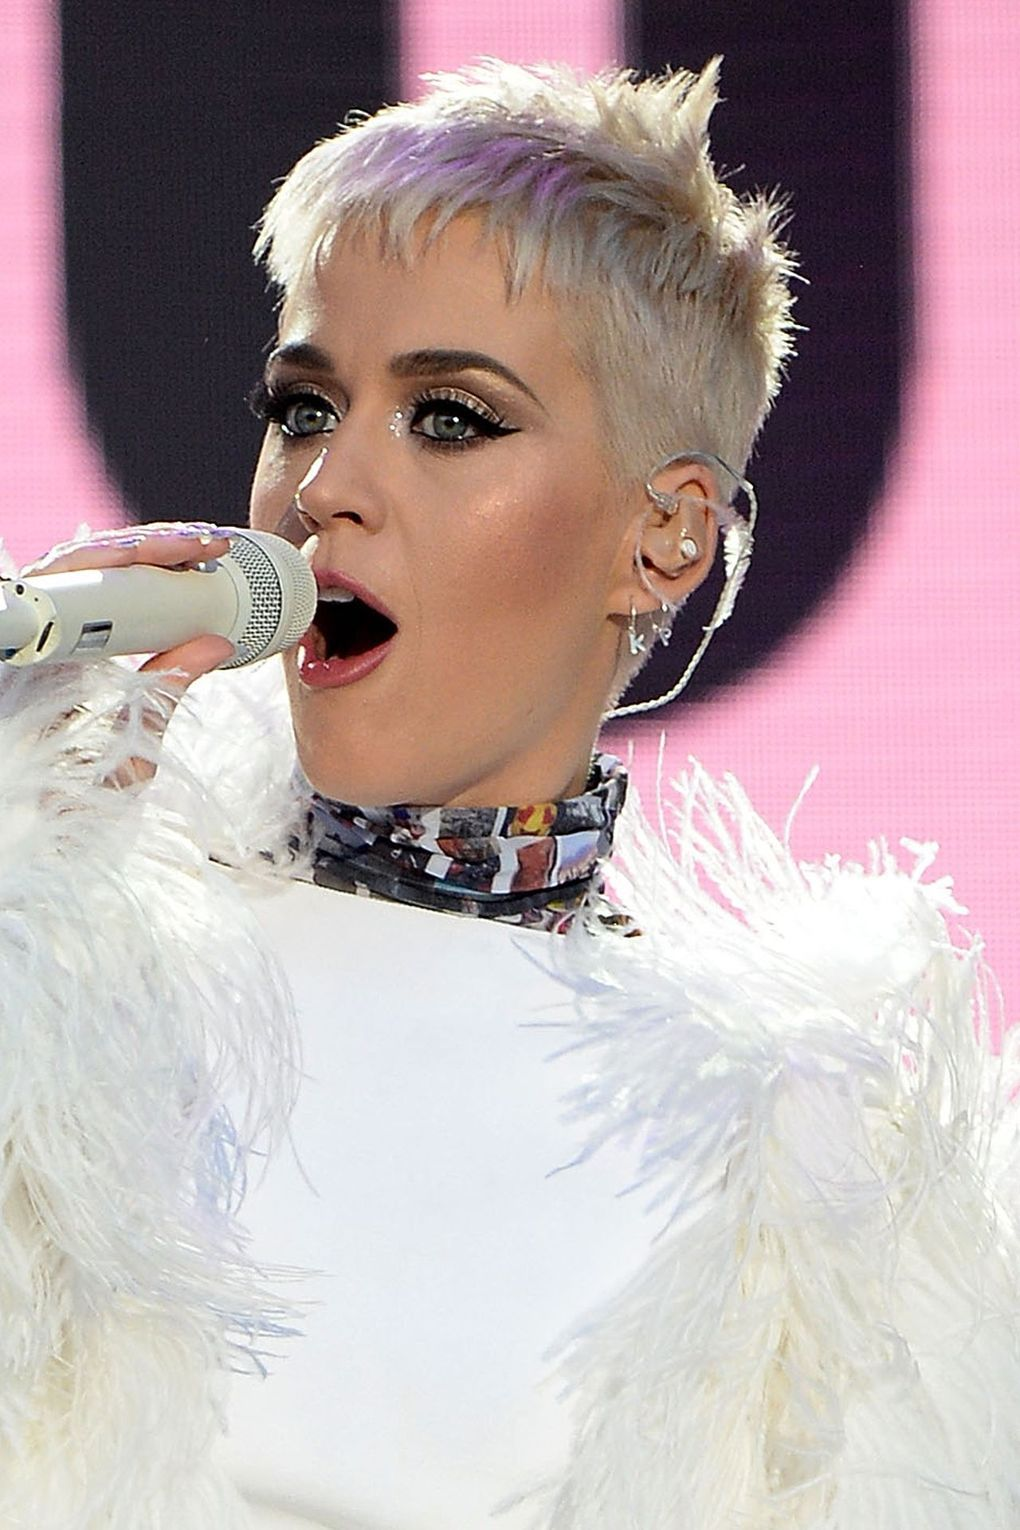 Katy perry reveals the real reason she cut her hair short white